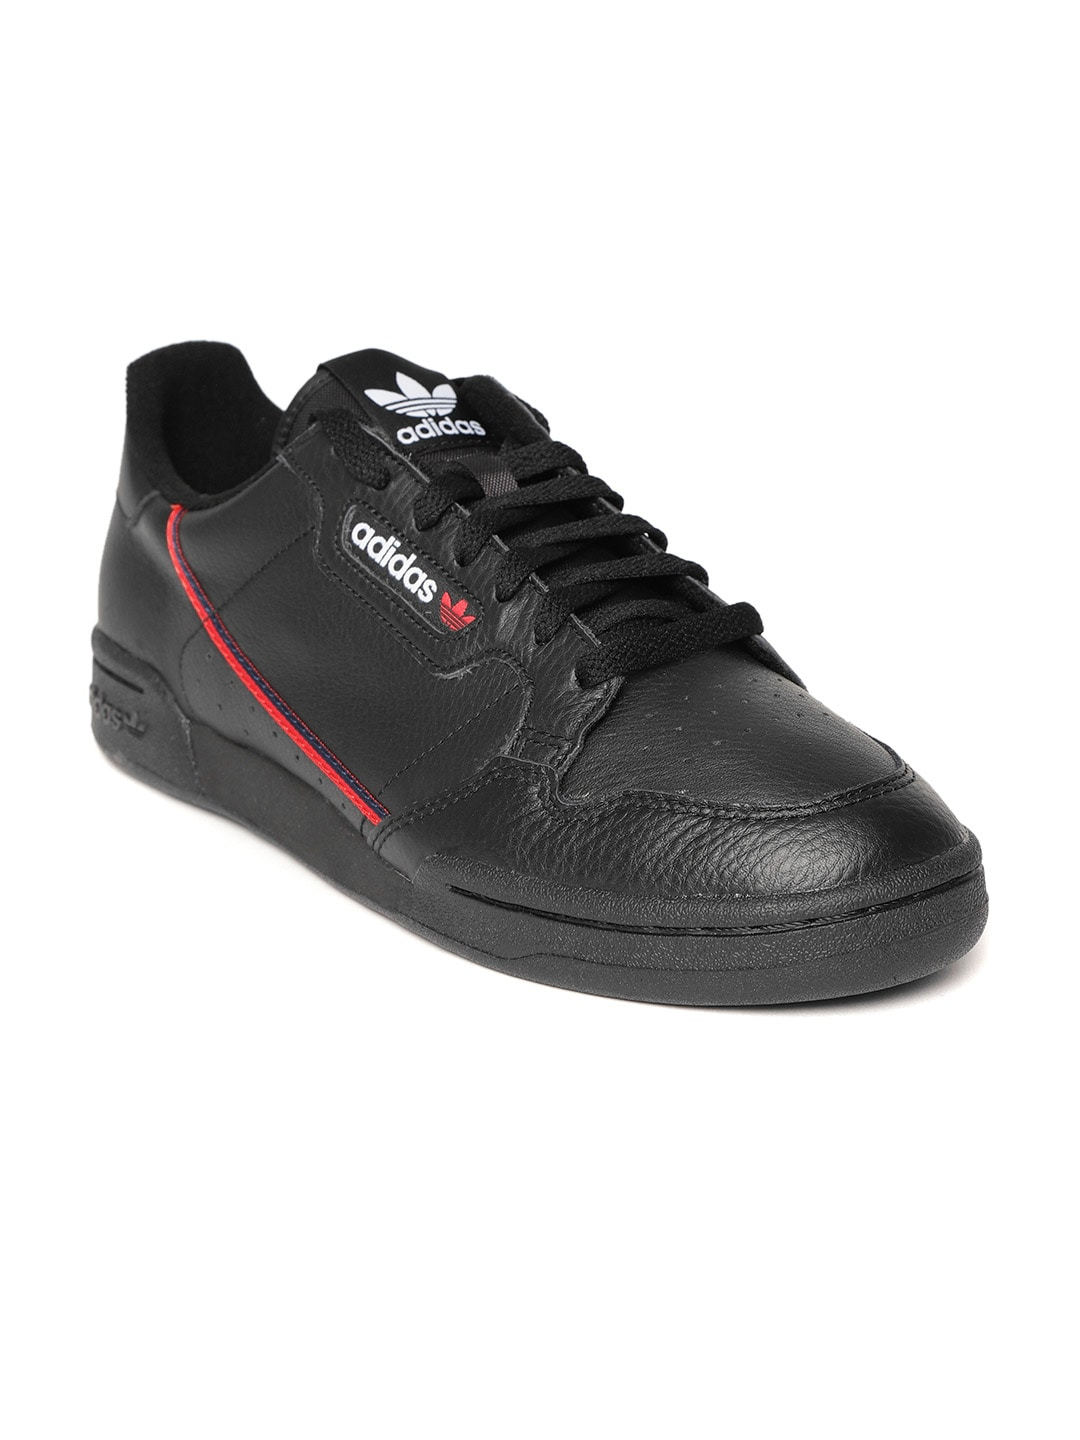 14f5d89cb Shoes - Buy Shoes for Men